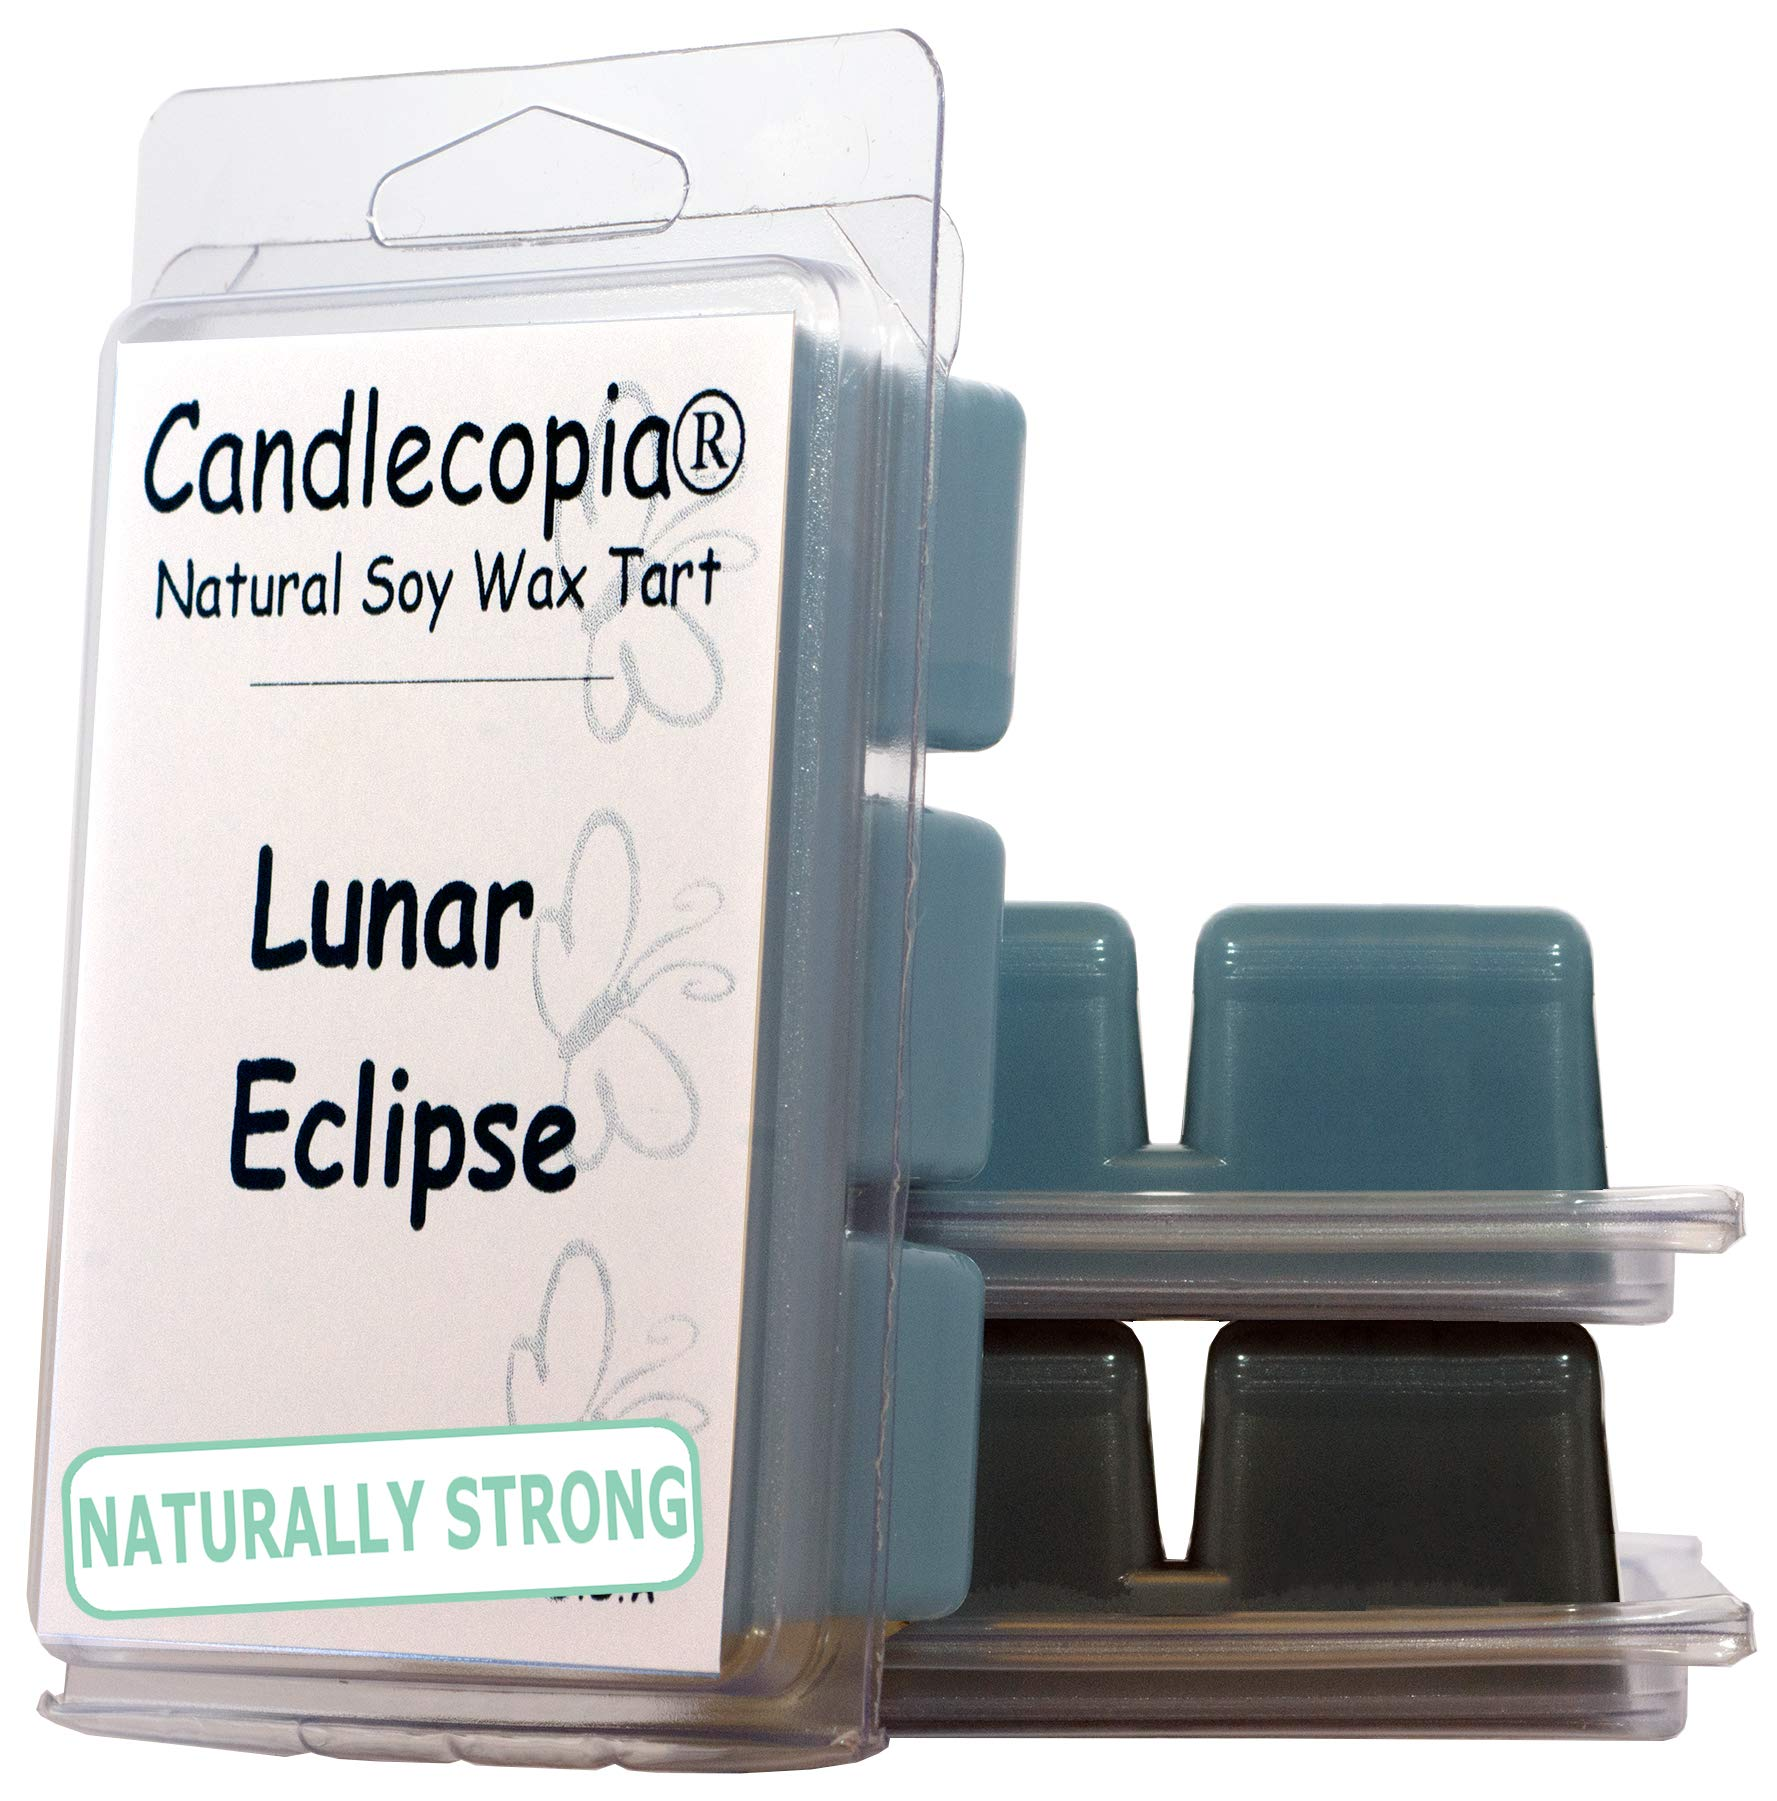 Candlecopia Stormy Nights, Black Sea and Lunar Eclipse Strongly Scented Hand Poured Vegan Wax Melts, 18 Scented Wax Cubes, 9.6 Ounces in 3 x 6-Packs